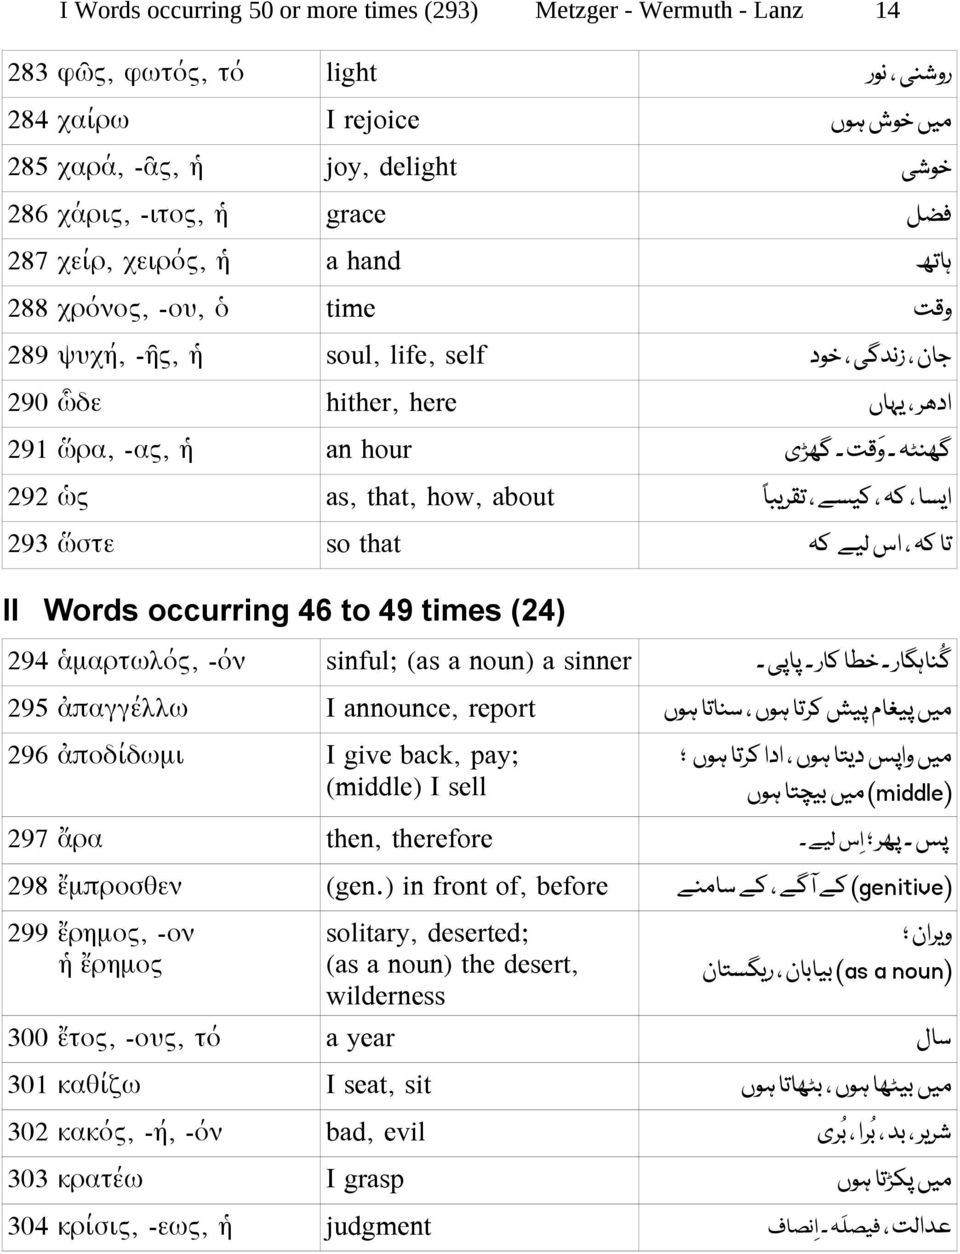 that, how, about ا ایسا کہ کیسے تقریب تا کہ اس لیے کہ 293 ὥστε so that II Words occurring 46 to 49 times (24) گناہگار خطا کار پاپی 294 ἁμαρτωλός, -όν sinful; (as a noun) a sinner میں پیغام پیش کرتا